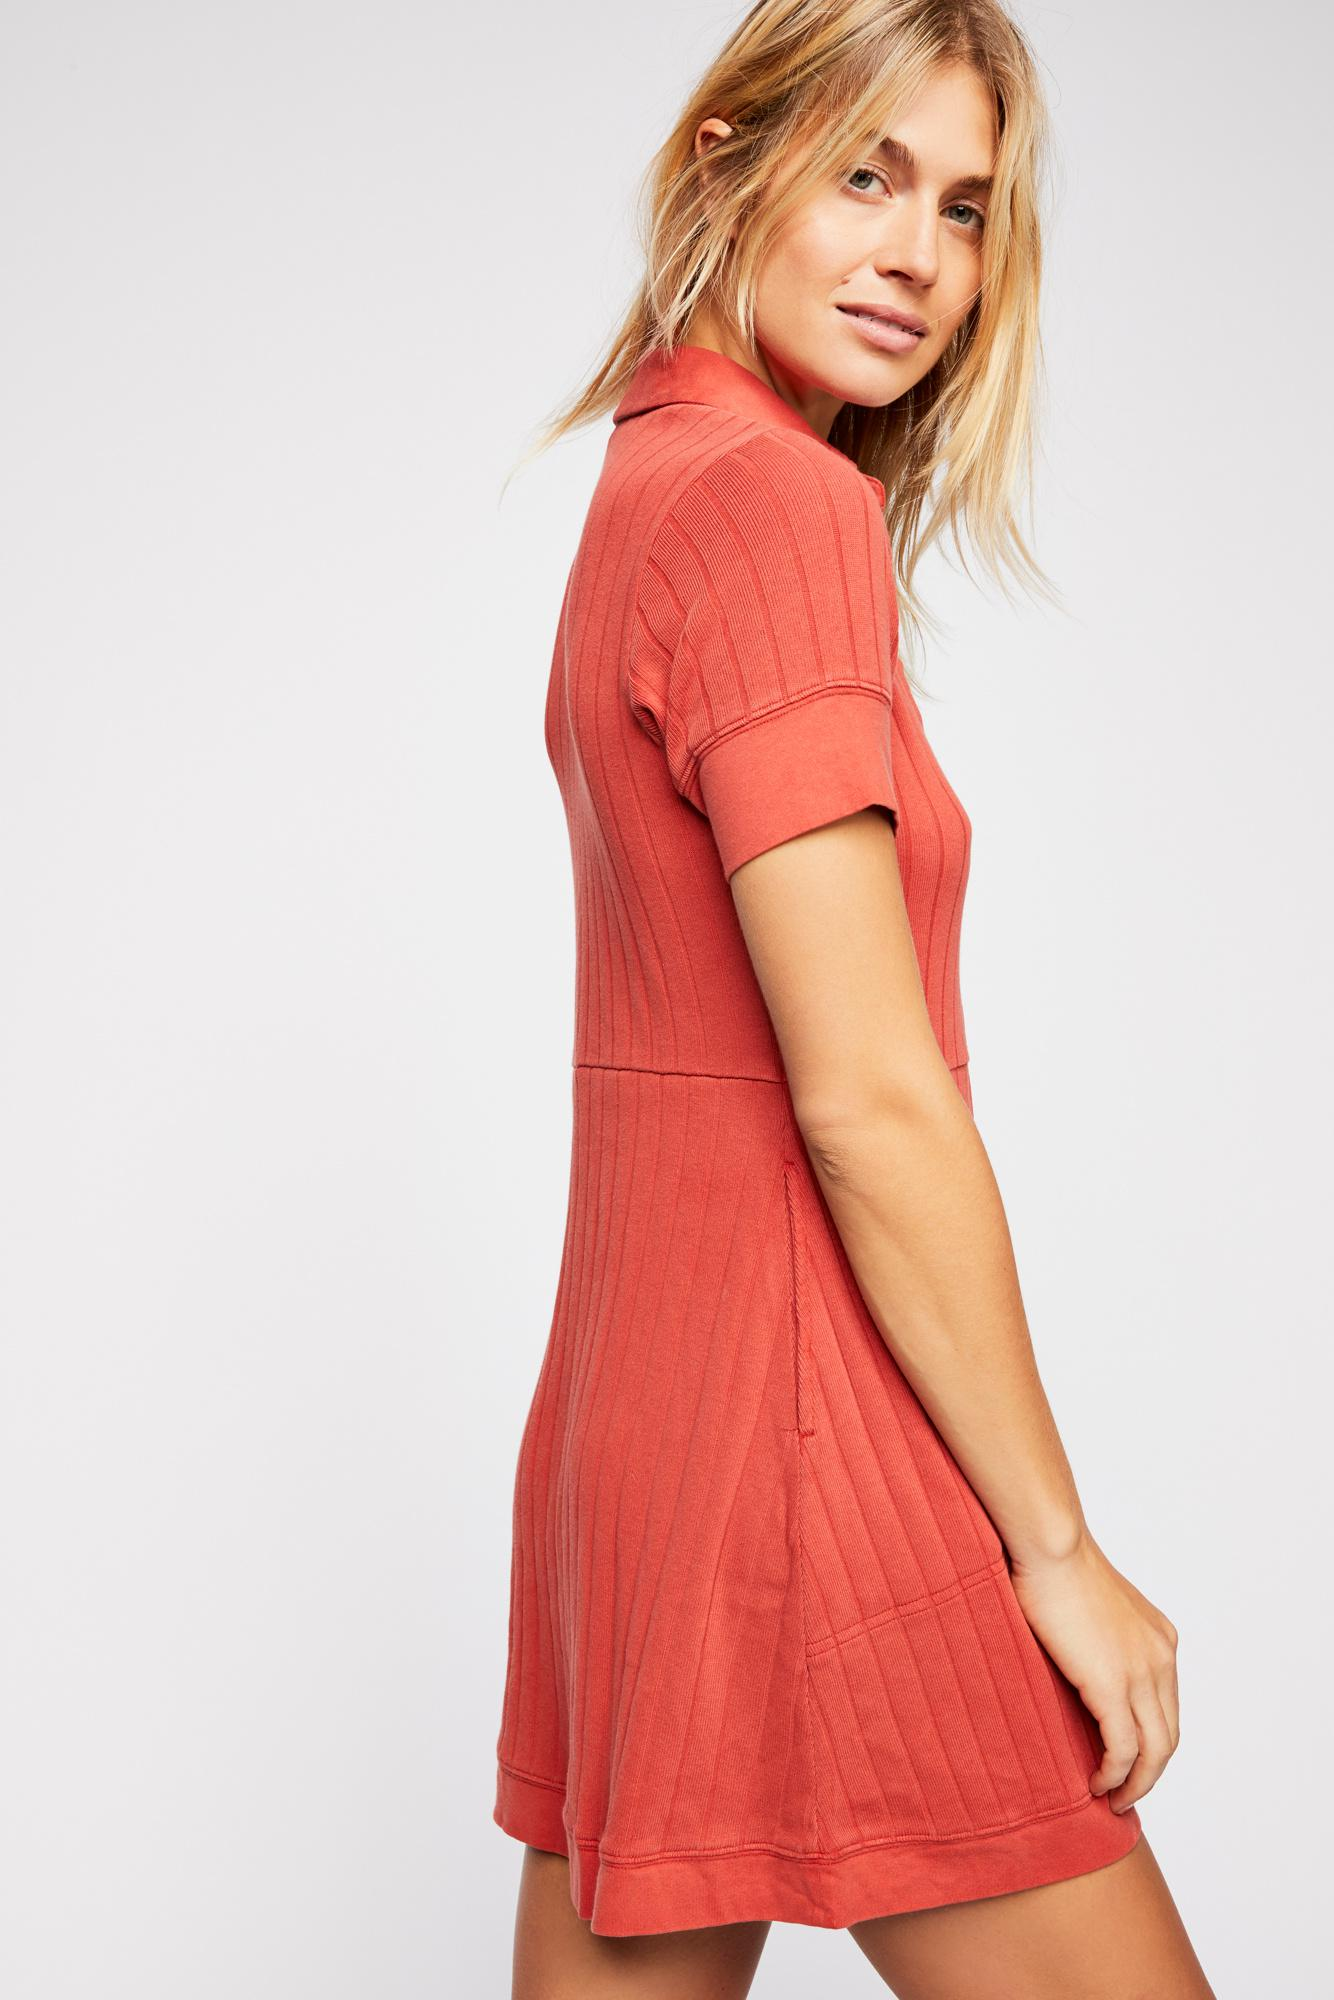 fa28ad5024 Free People - Red New Afternoon Mini Dress By Fp Beach - Lyst. View  fullscreen